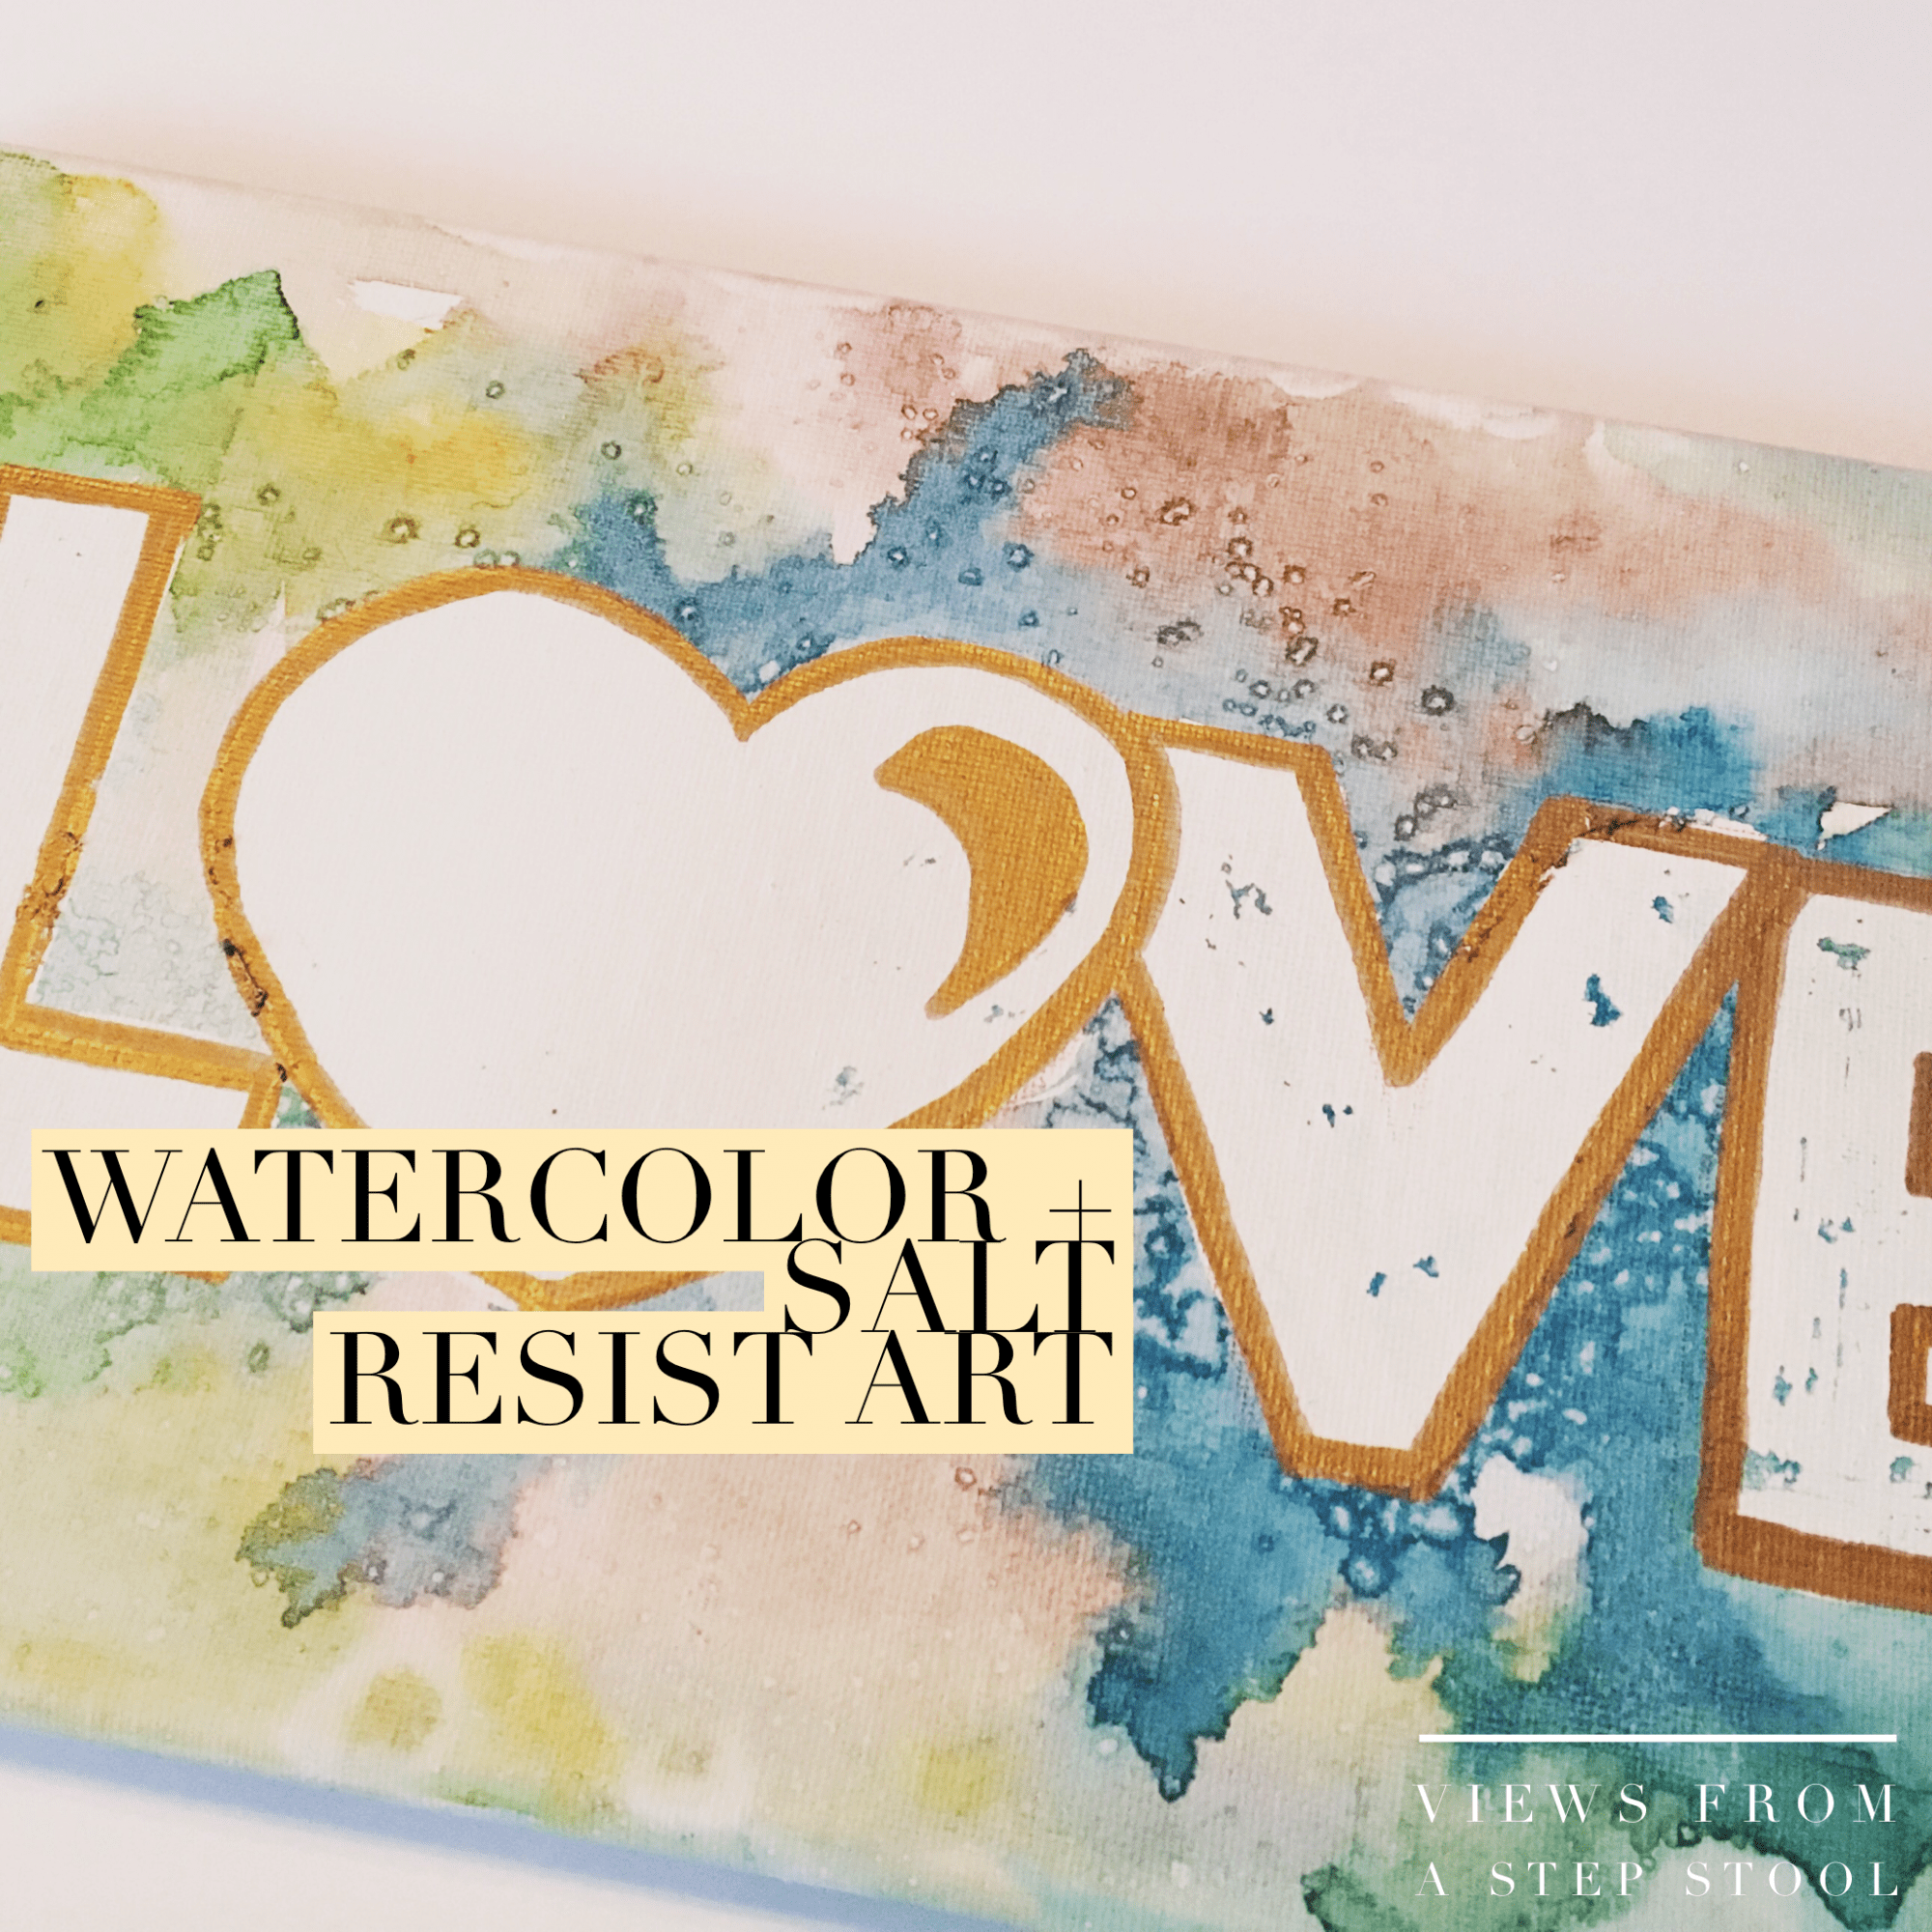 Watercolor artist magazine subscription - Watercolor Artist Magazine Subscription 35